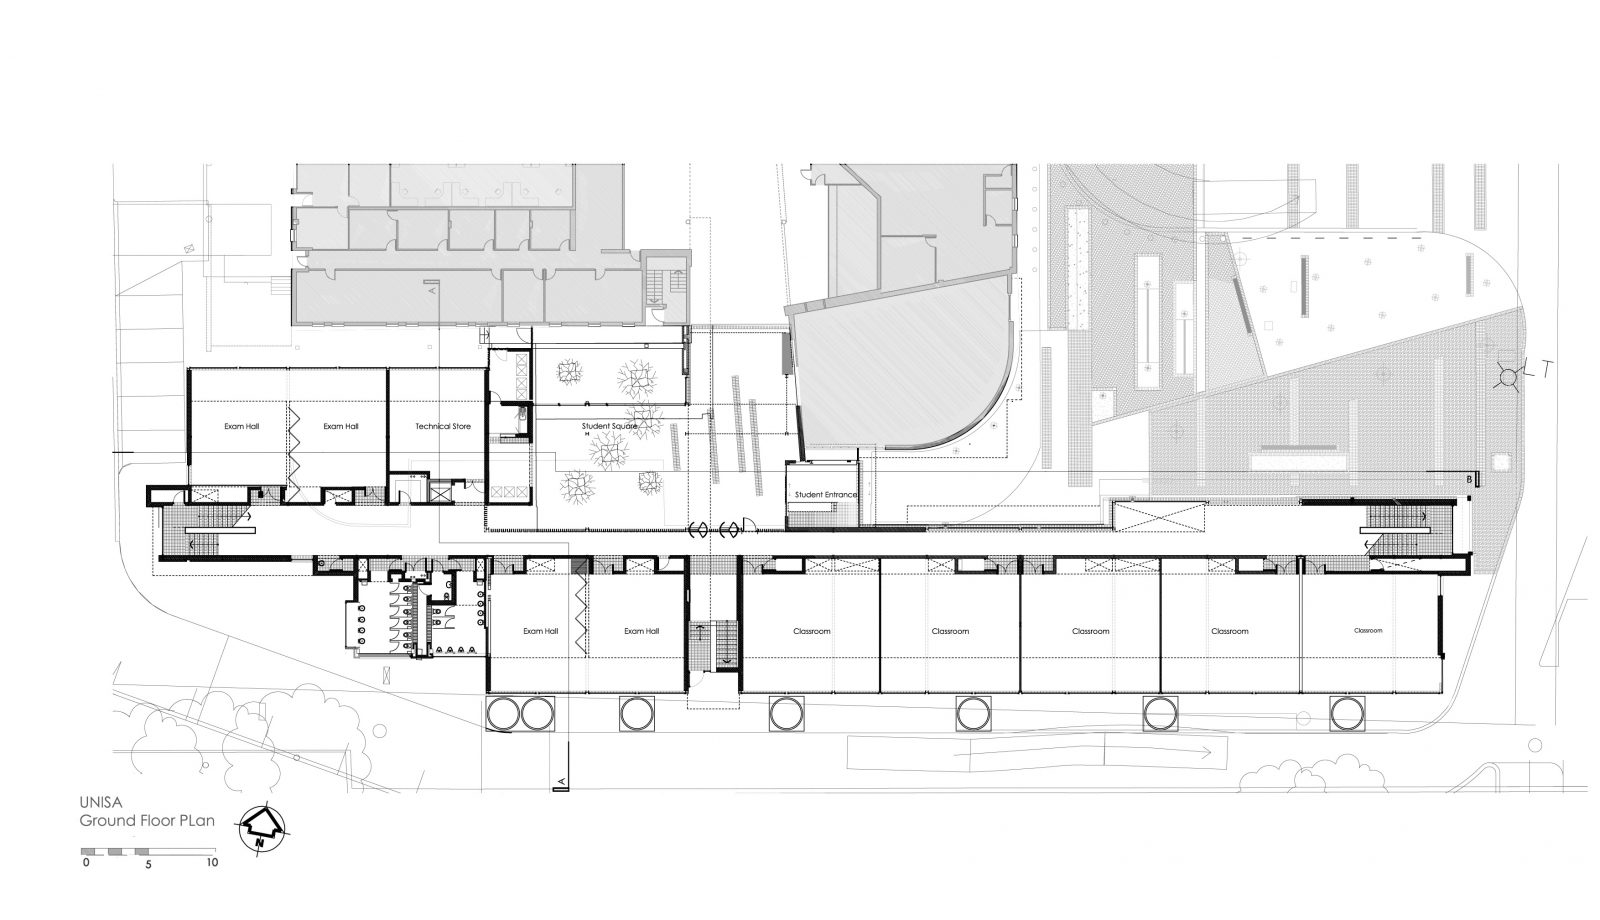 Unisa_Ground Floor Plan